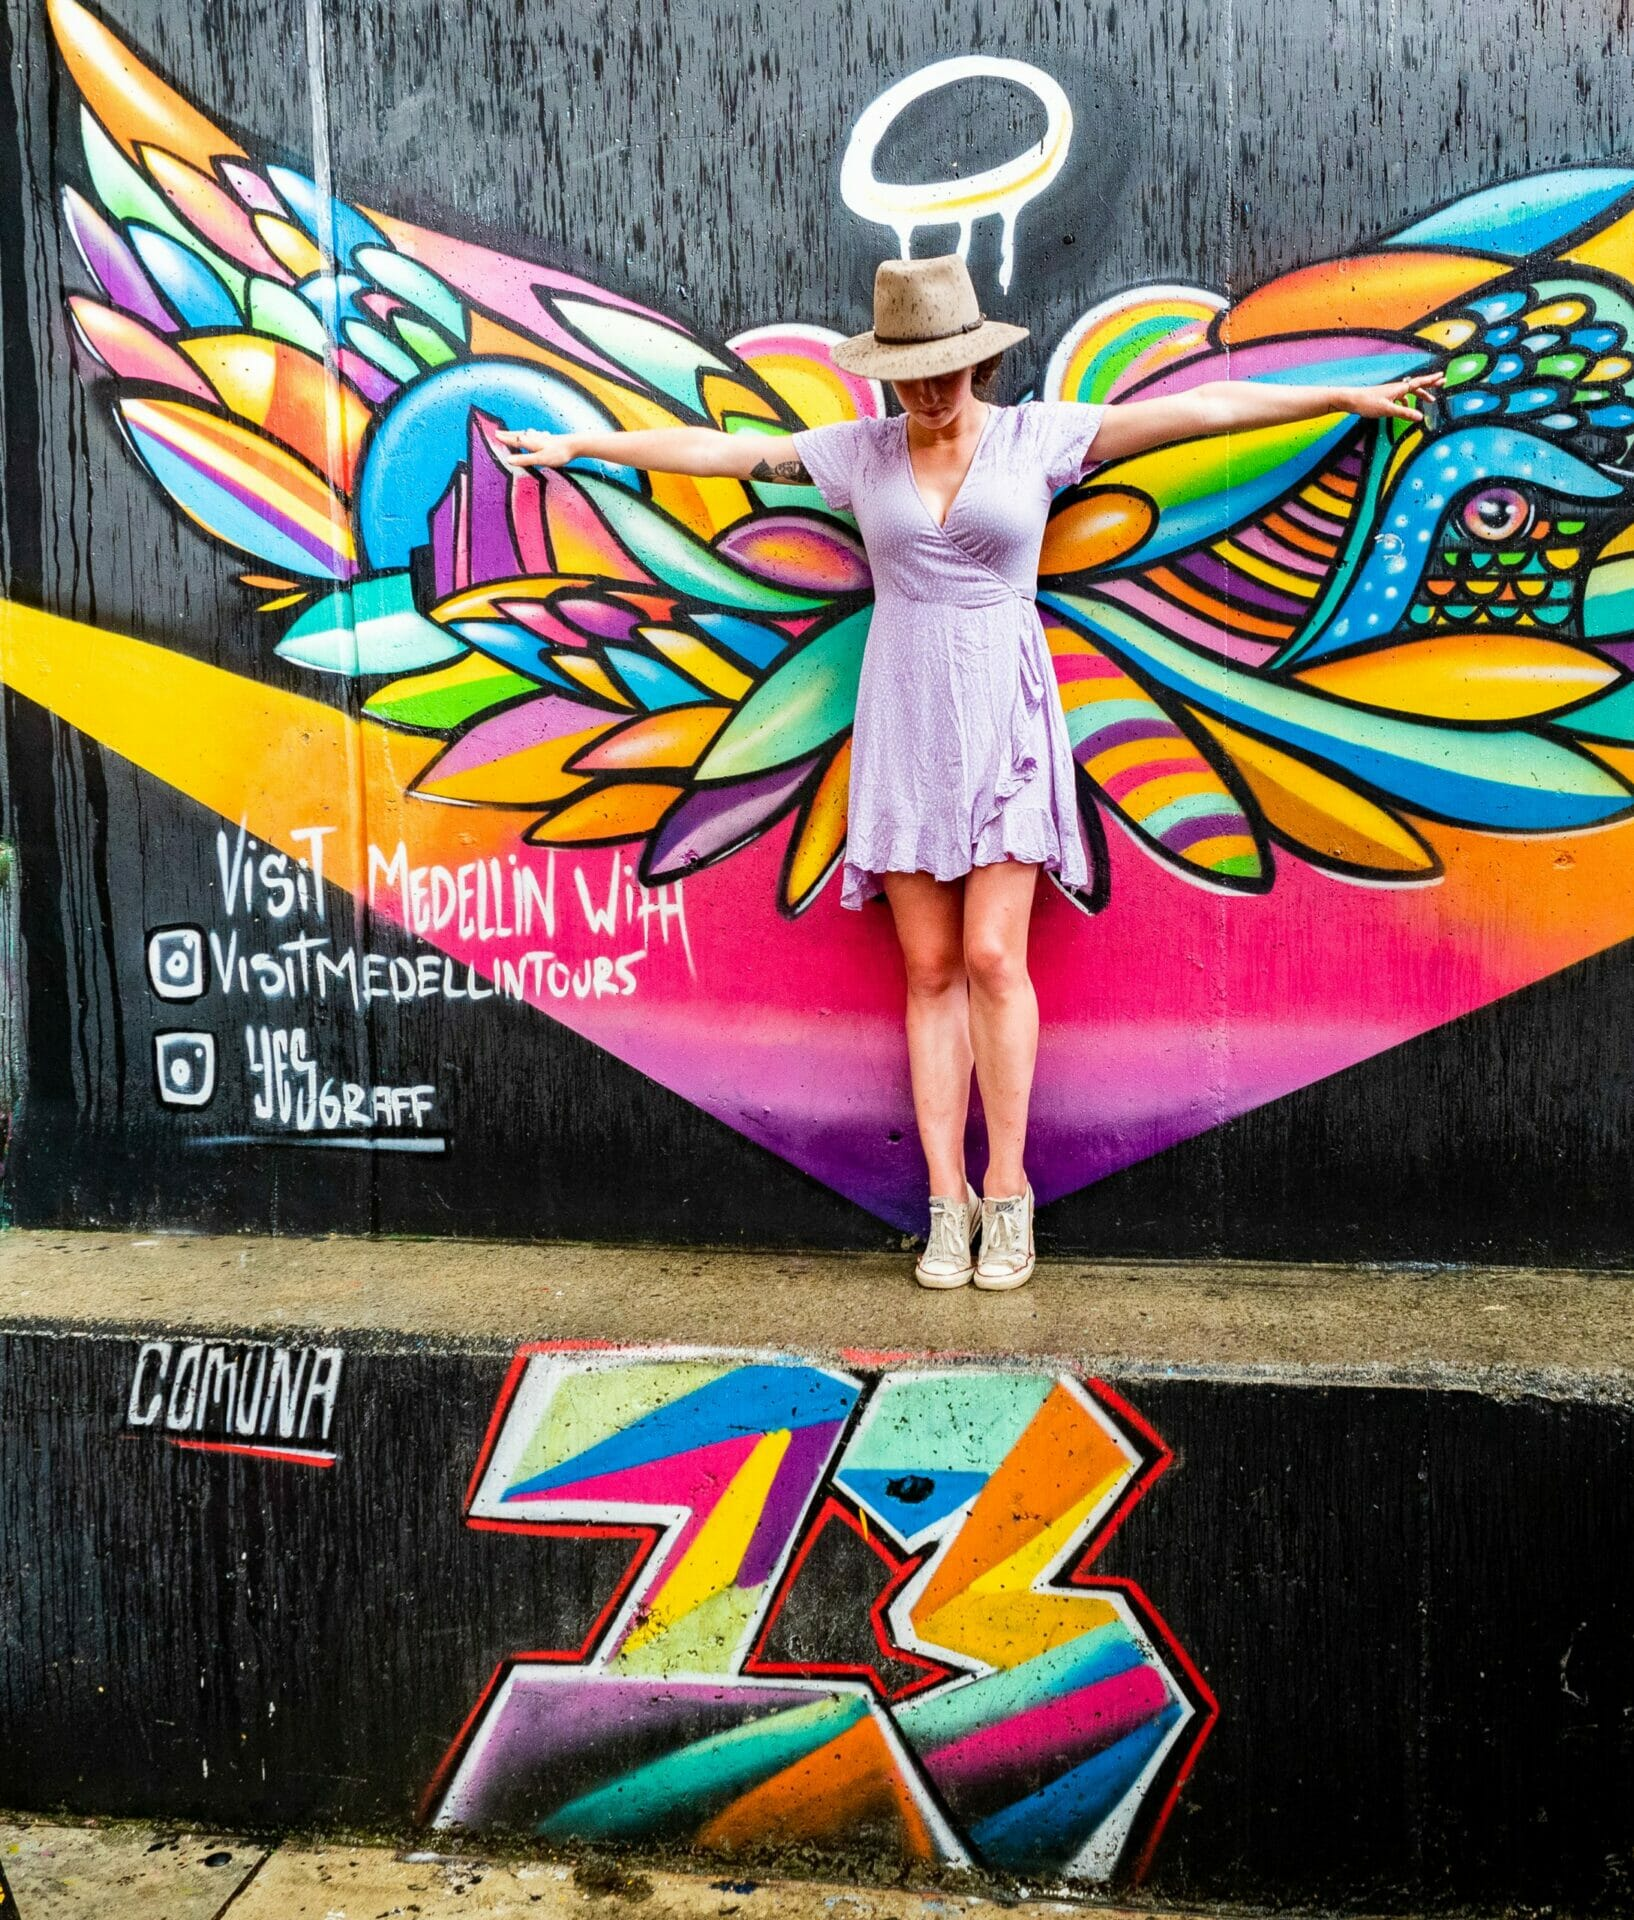 Graffiti street art angel wings Medellín Colombia